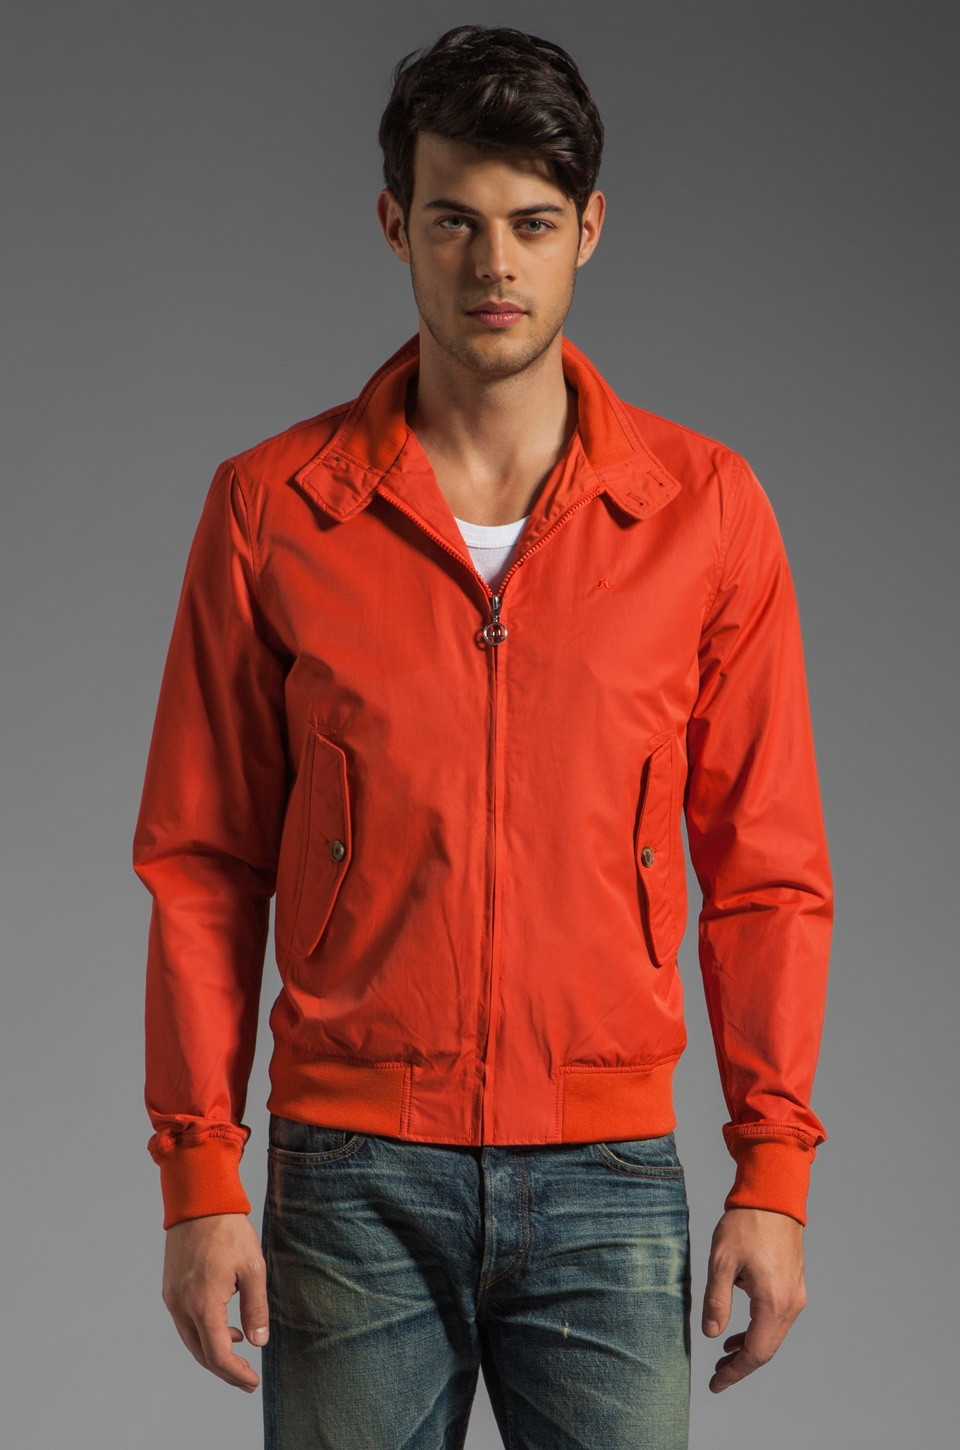 J. Lindeberg Travis Ultimate Copa Jacket in Red Coral